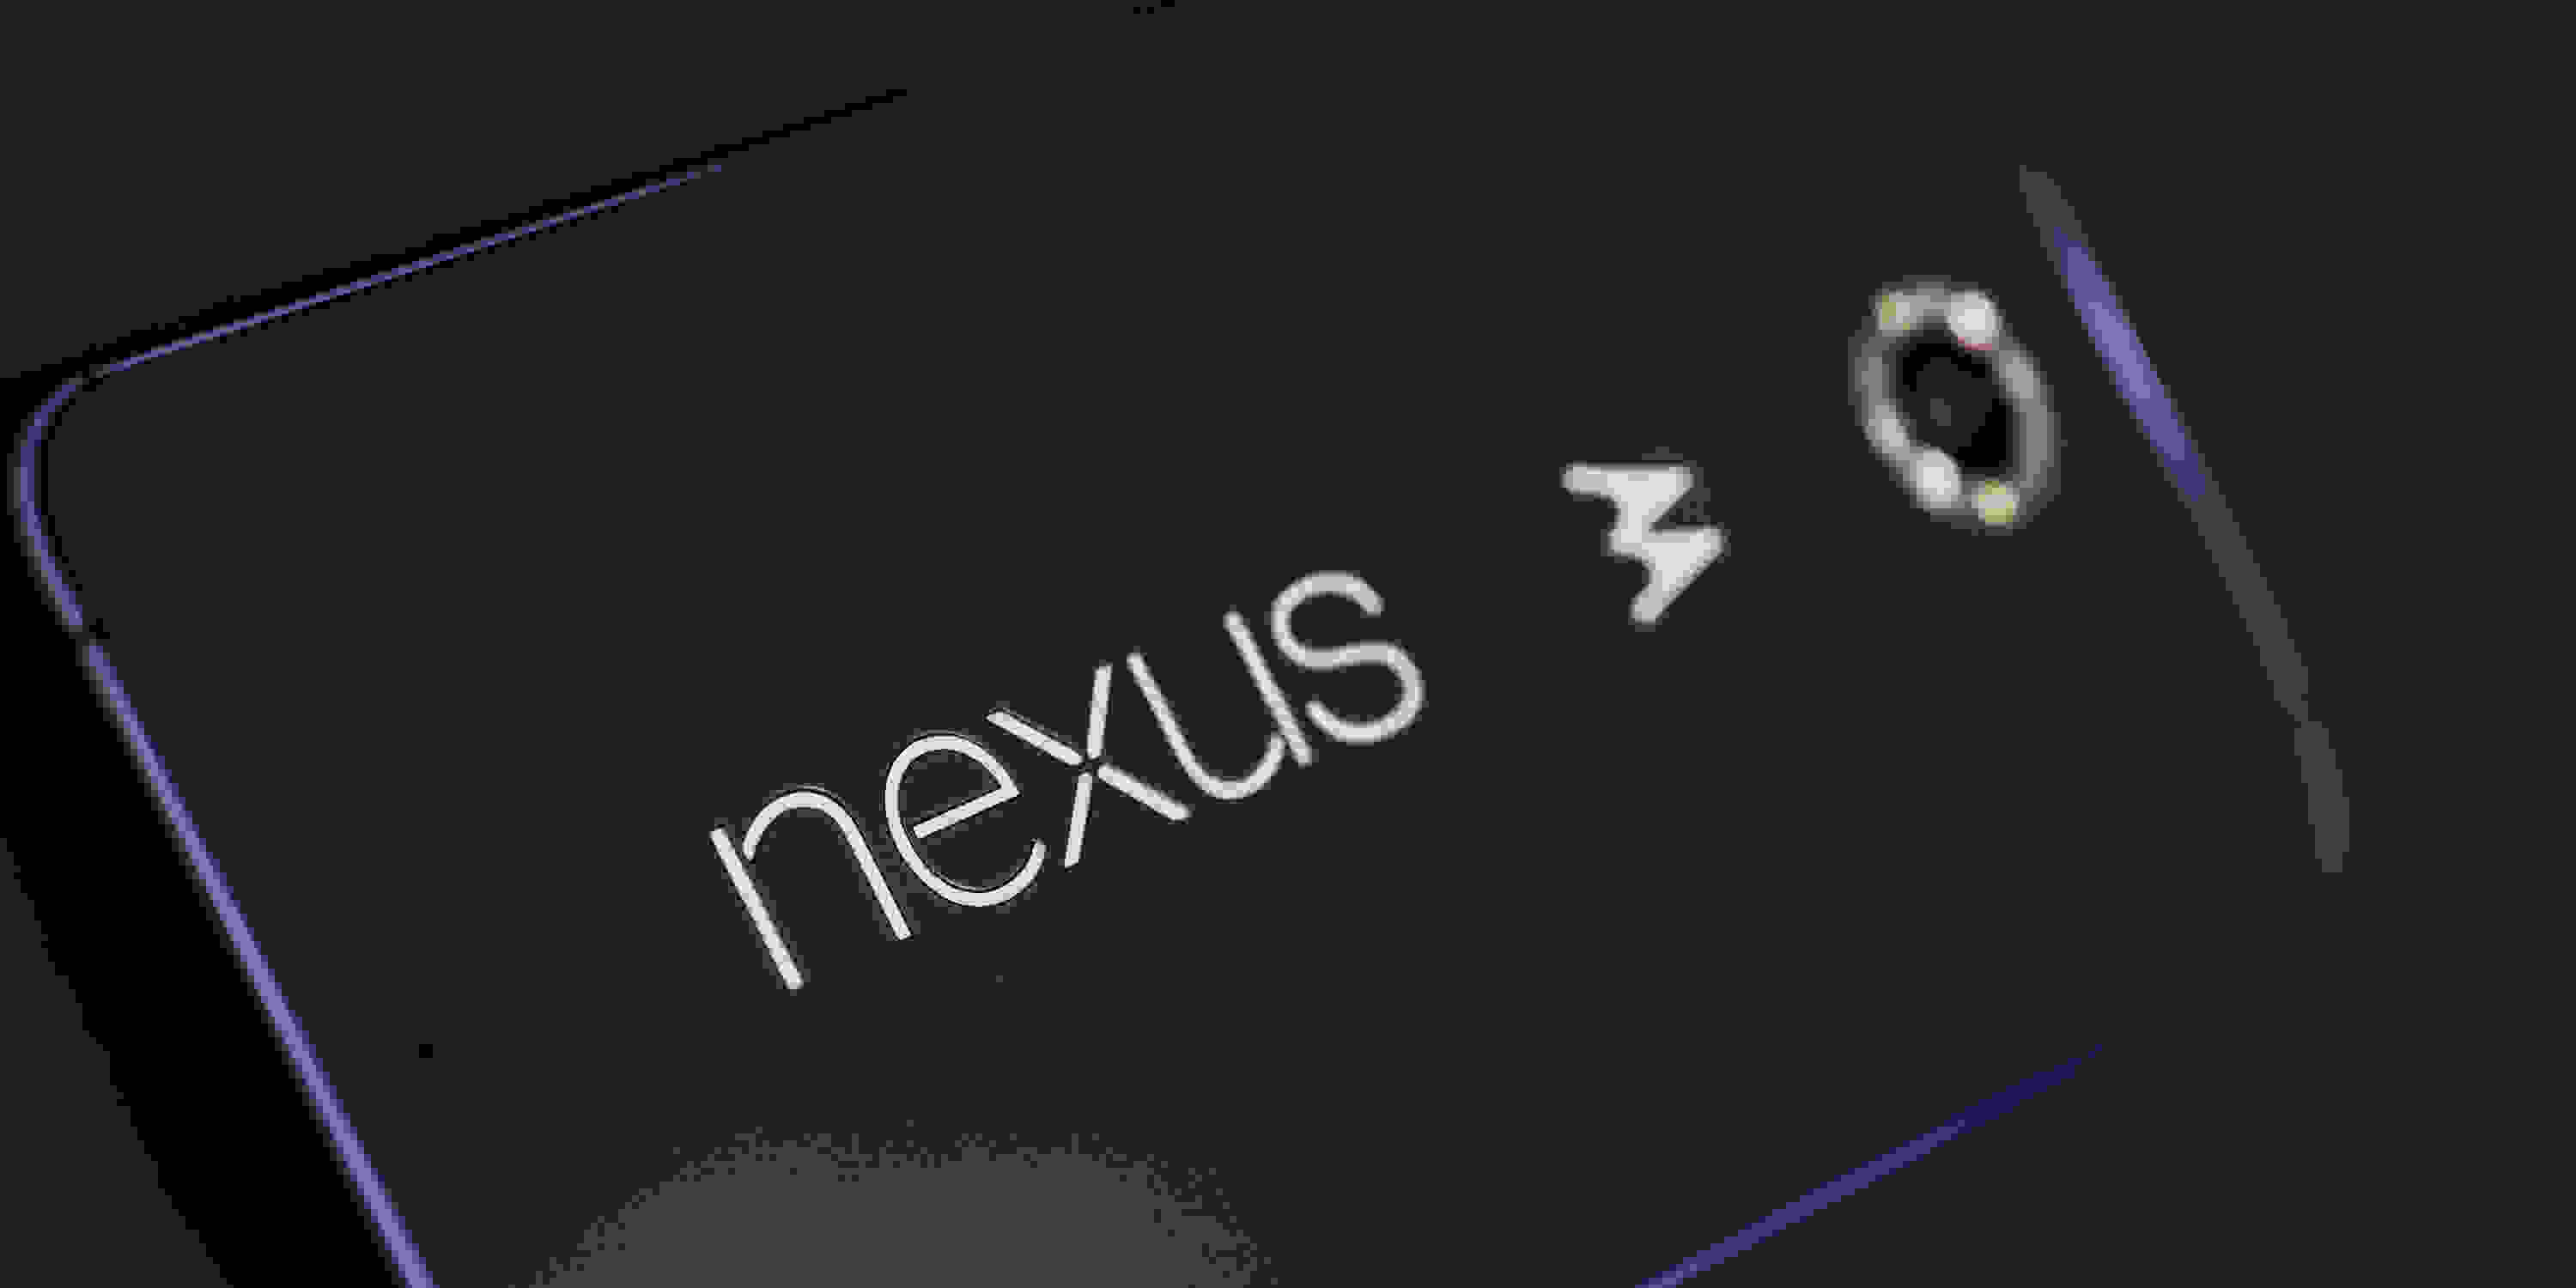 A photo of the Google Nexus 6's logo.